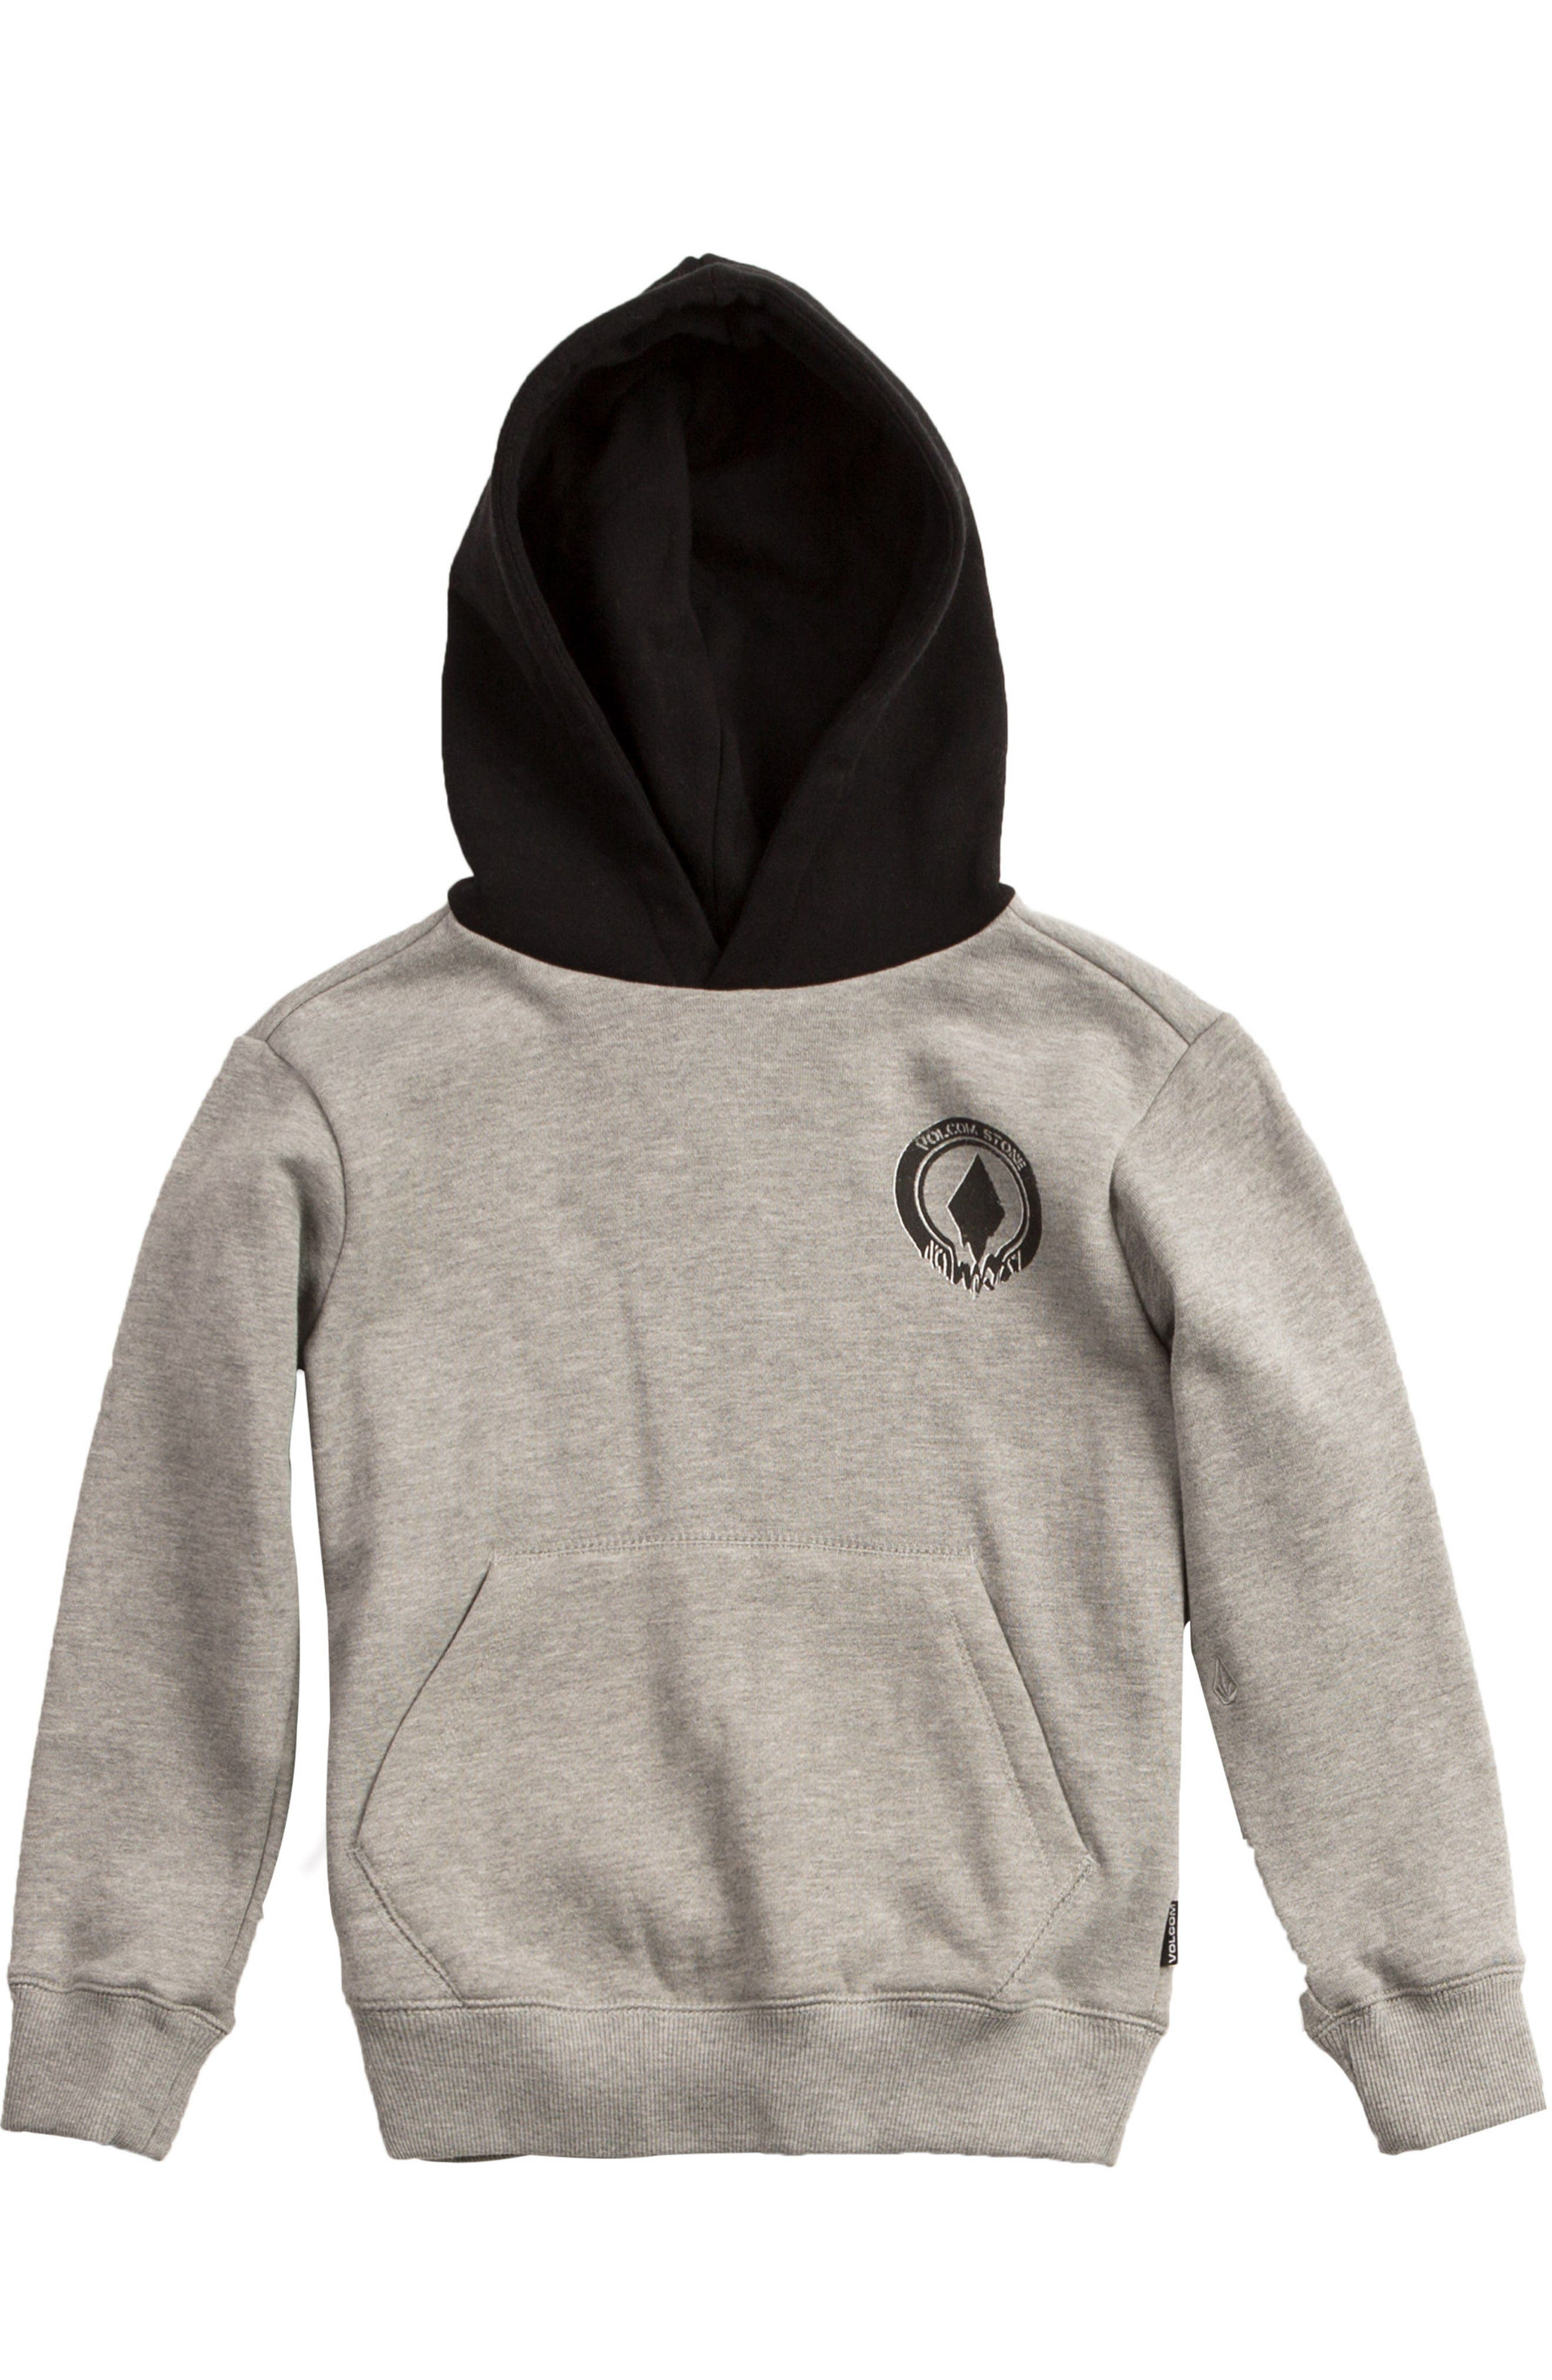 Supply Stone Graphic Pullover Hoodie,                             Main thumbnail 1, color,                             Grey